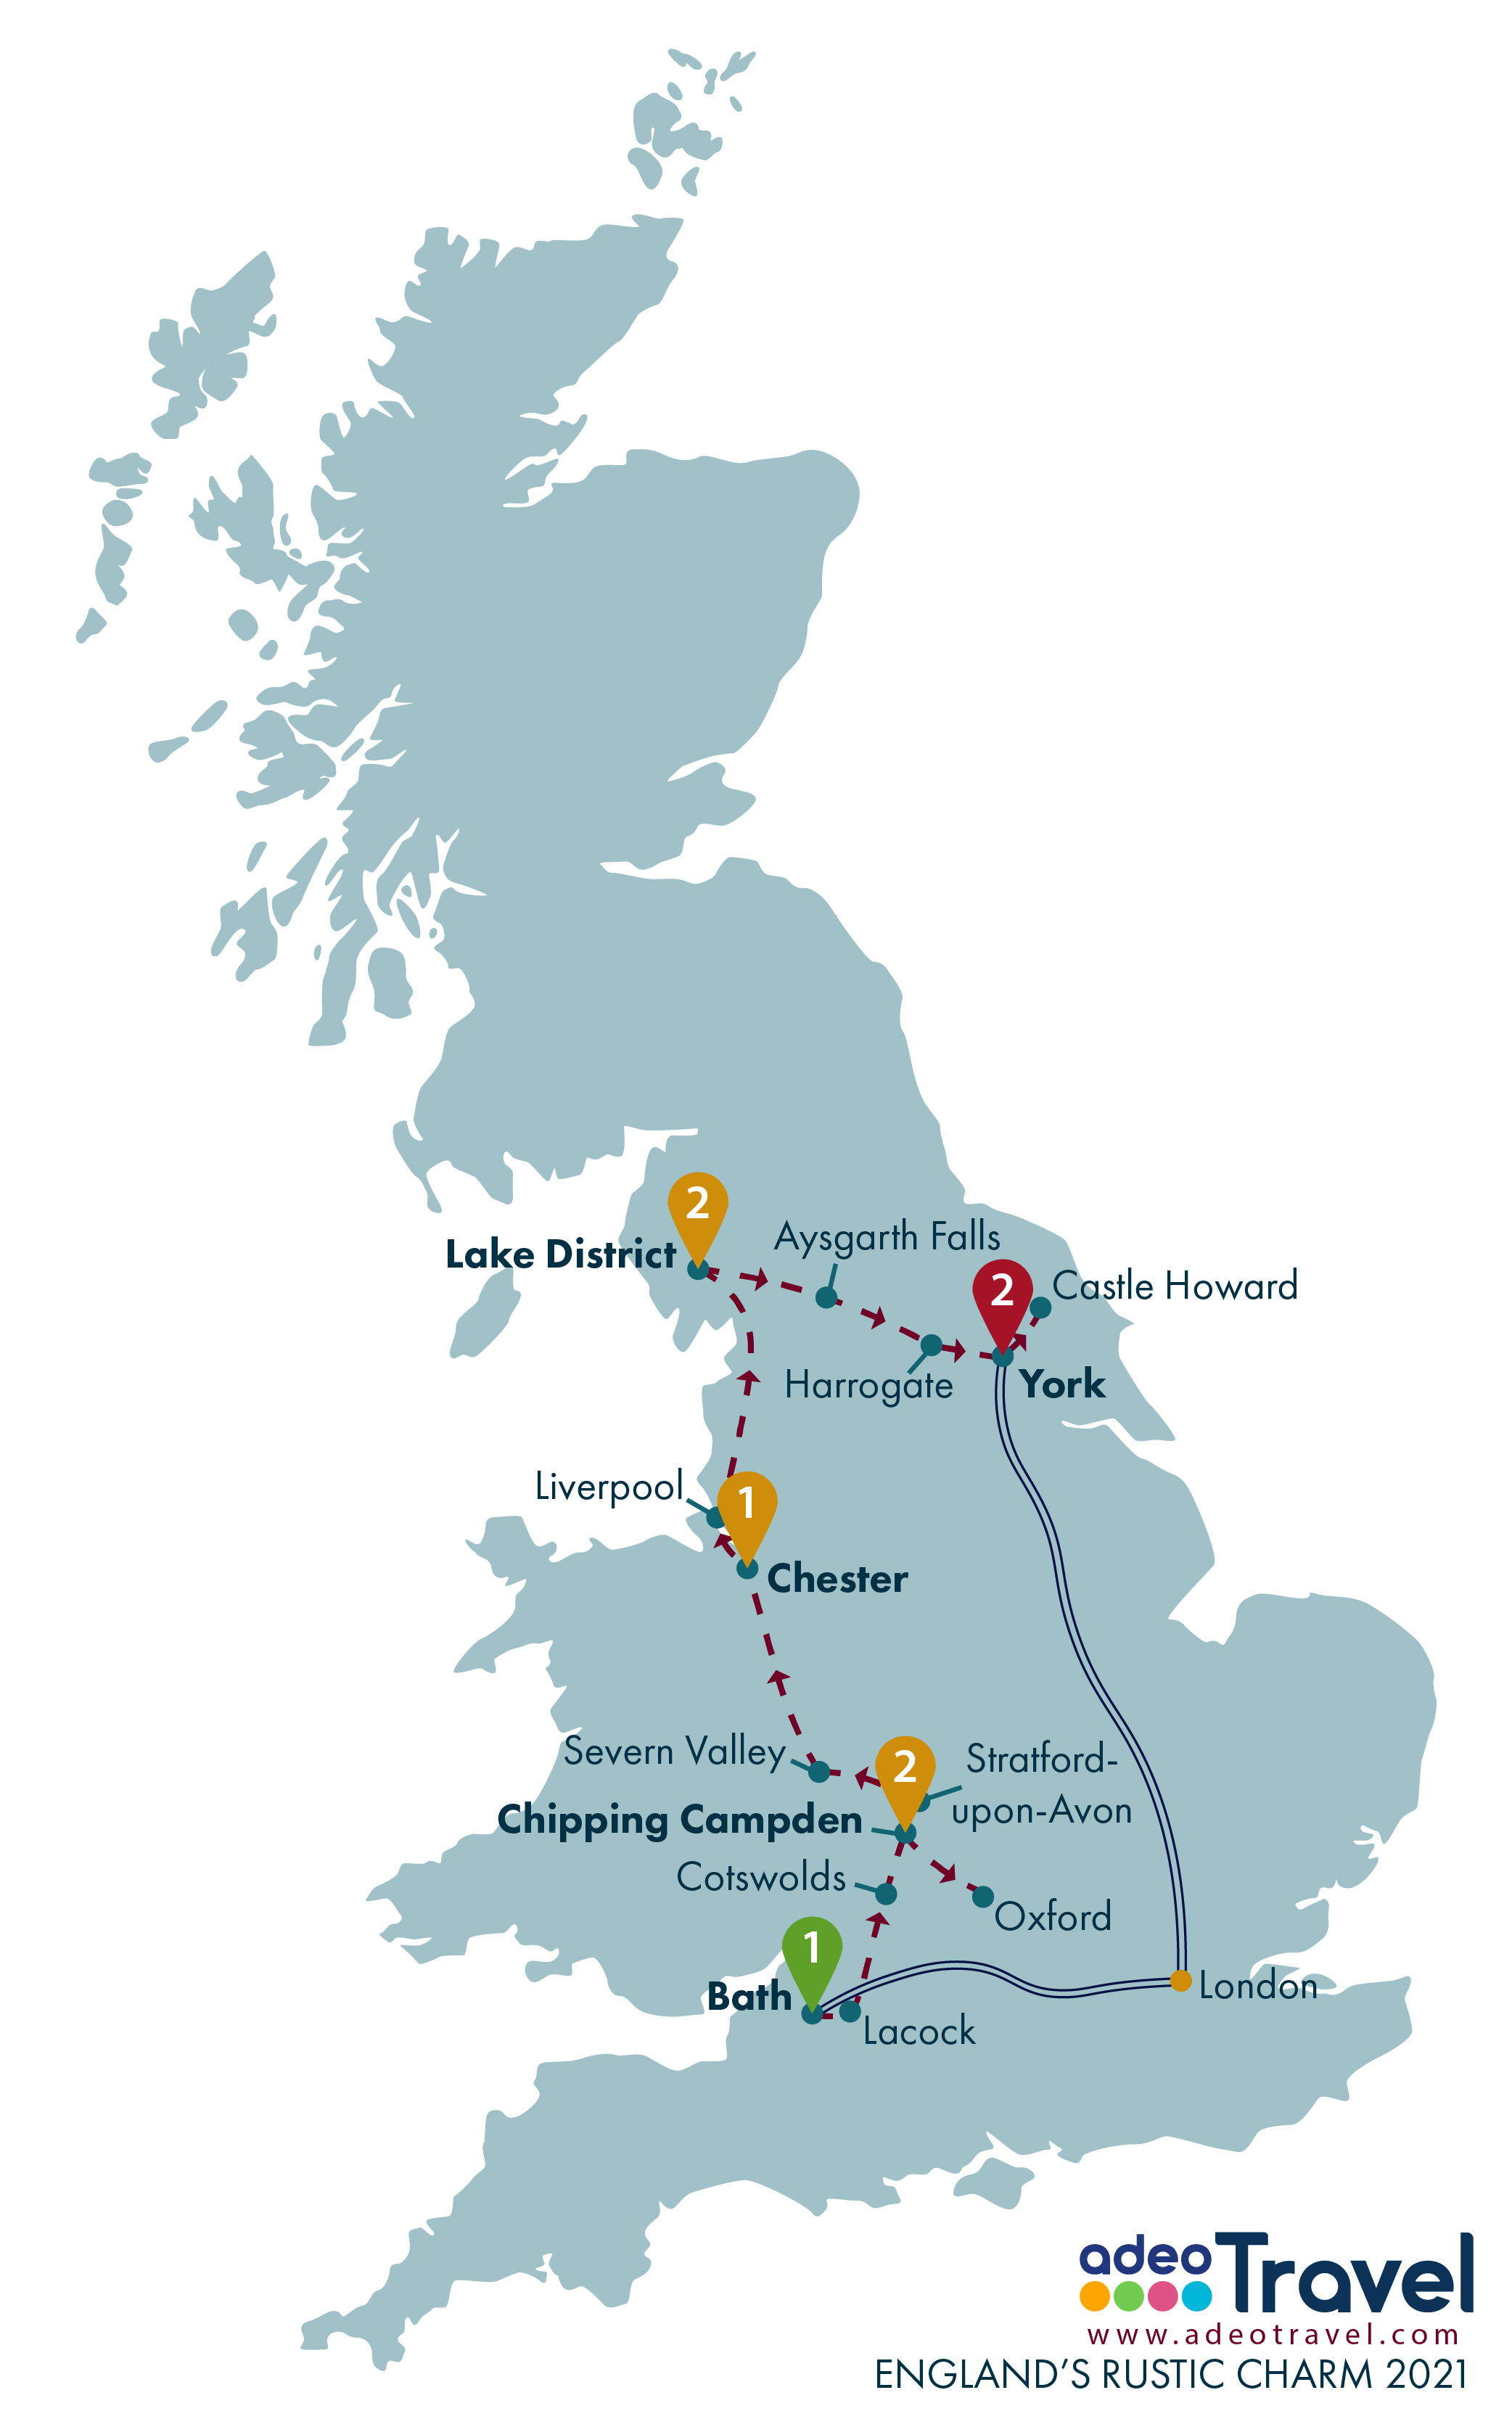 Map - England's Rustic Charm 2021